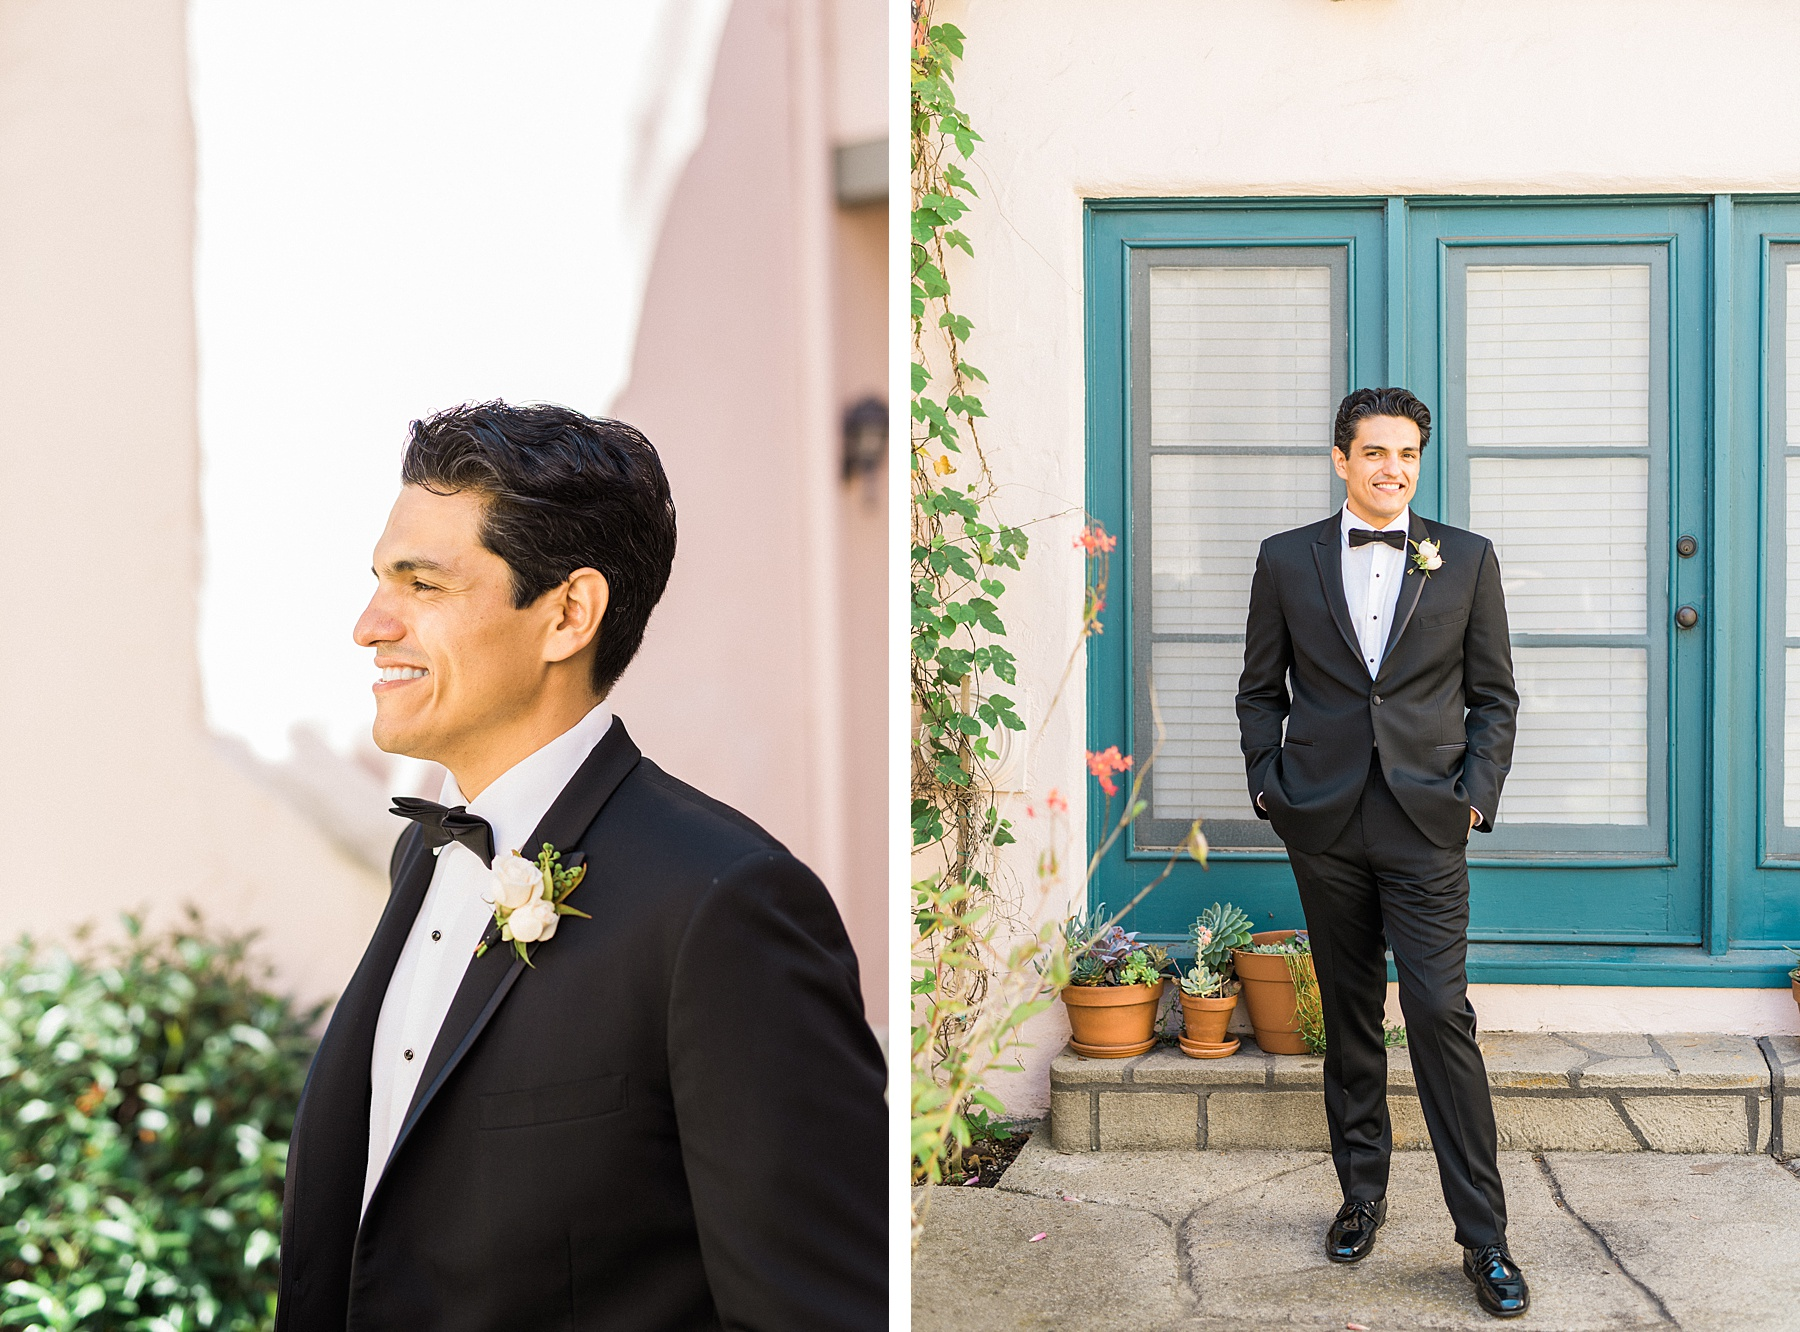 groom attire, stylish grooms, groom style, wedding day looks for men, wedding day style, suits for weddings, wedding inspiration for grooms